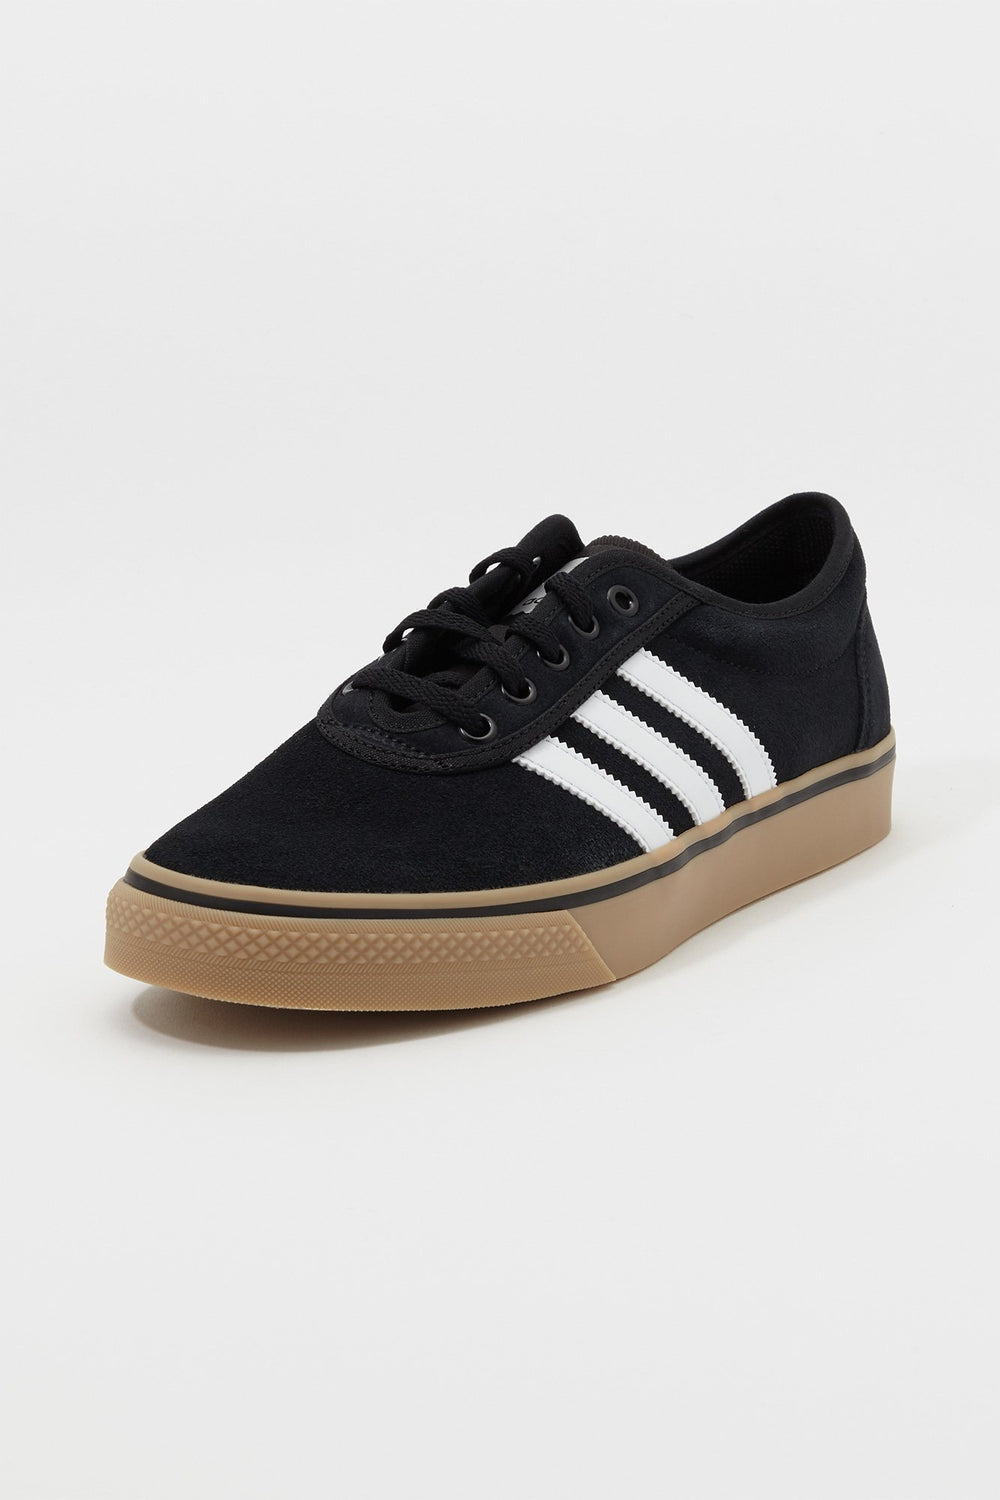 Adidas Mens Adi Ease Skate Shoes – Amnesia